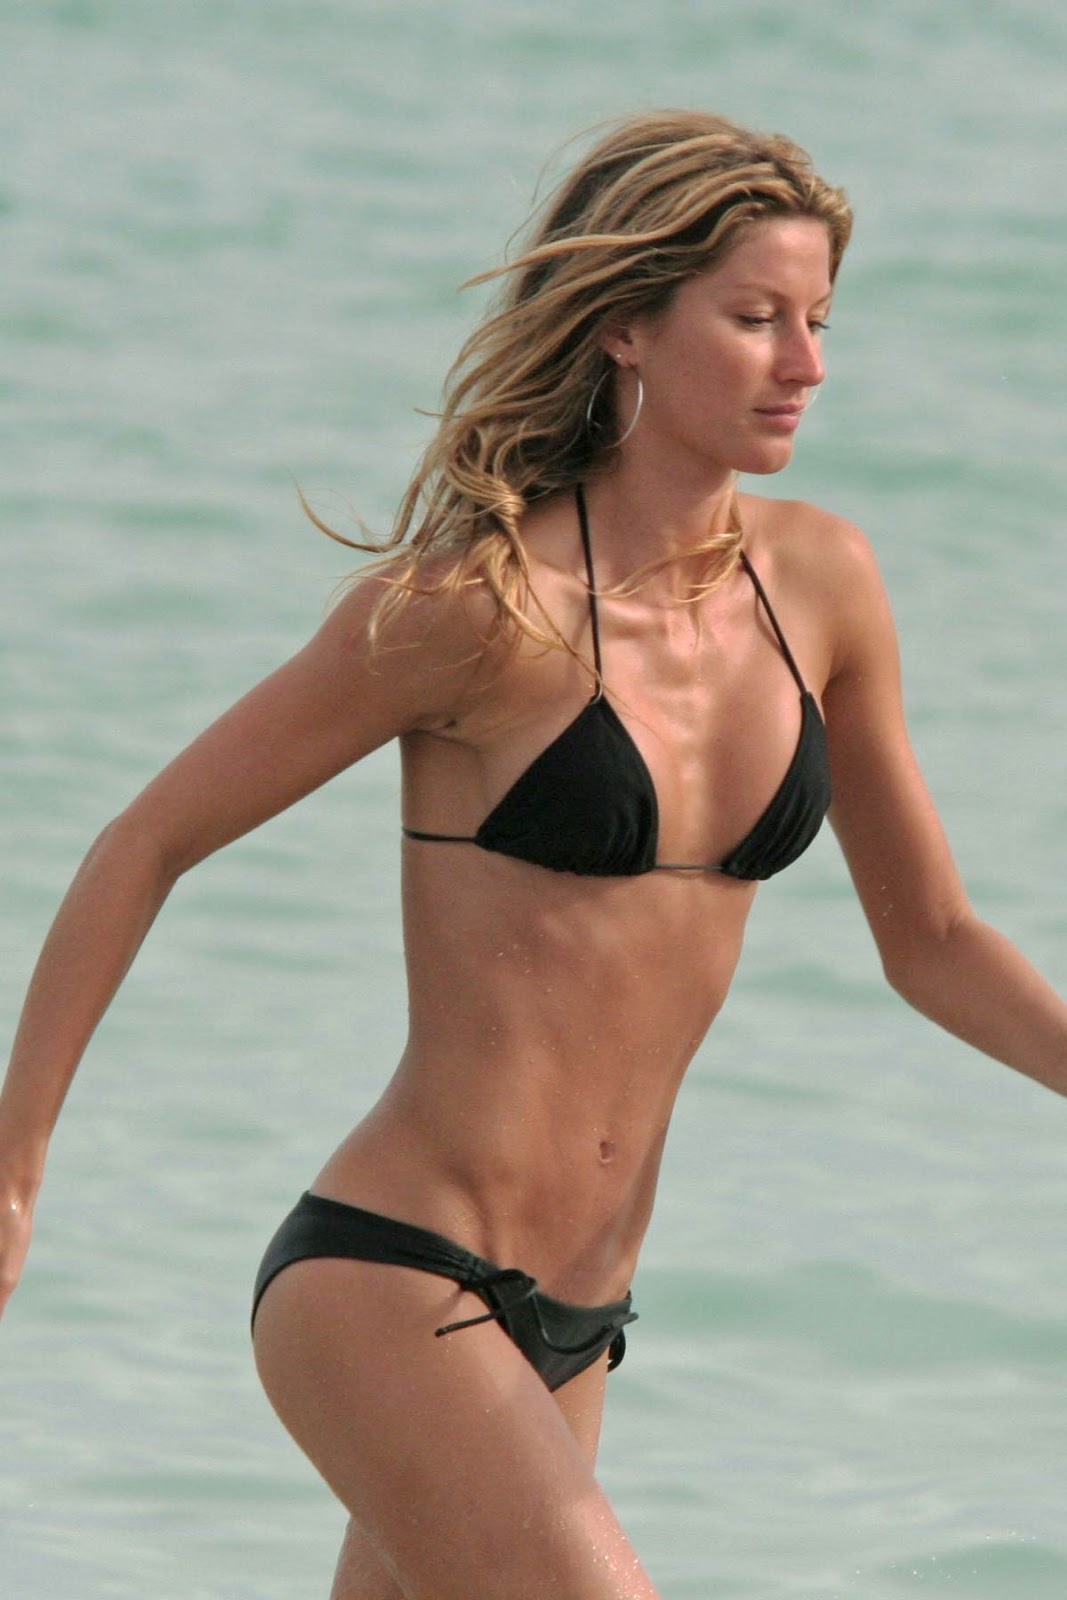 Gisele Bundchen Bikini Wallpapers | Celebrity Hot ... Gisele Bundchen